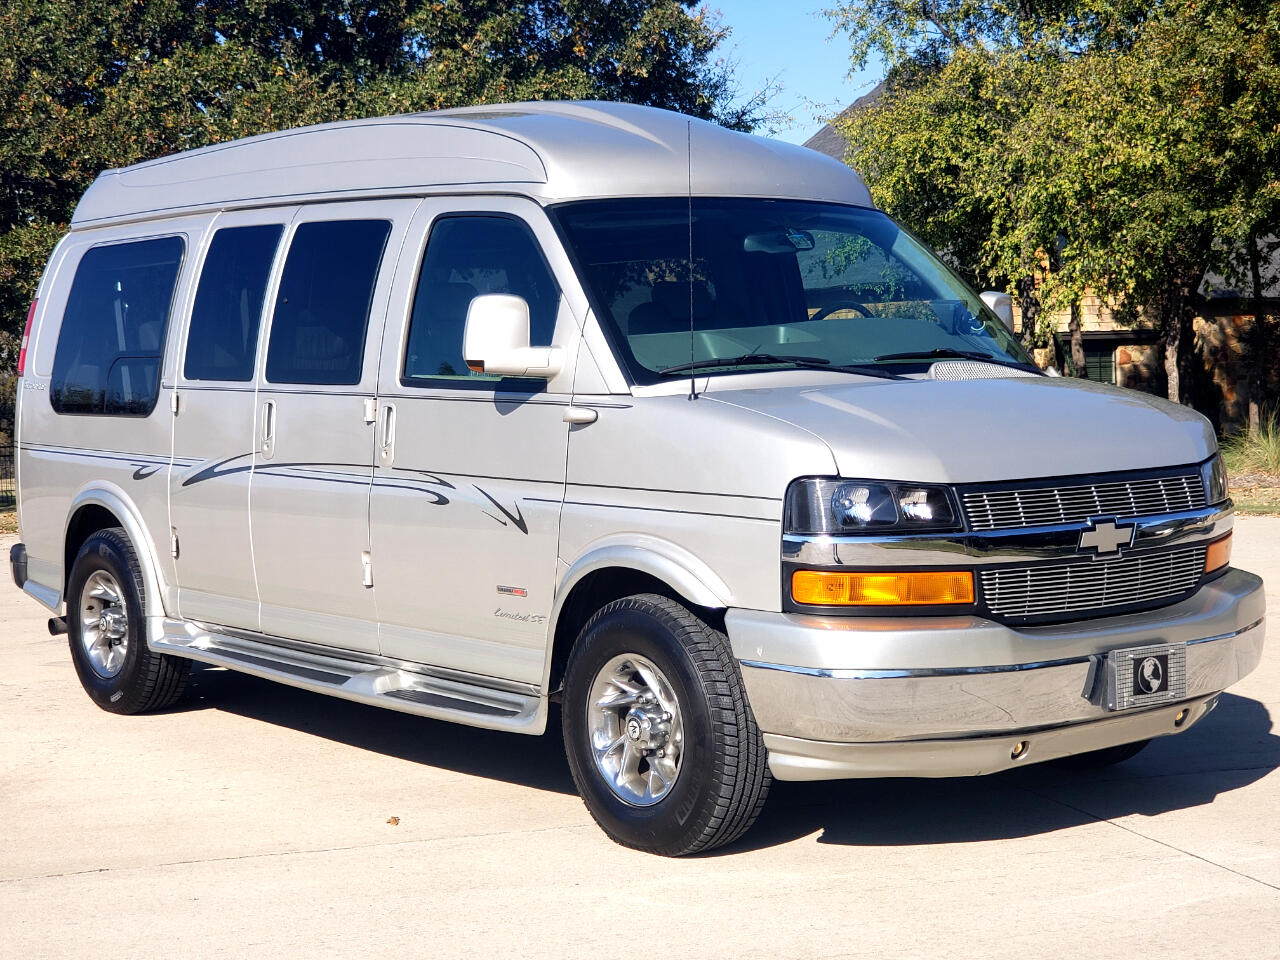 2007 Chevrolet Express Diesel Explorer Hightop Conversion Van!